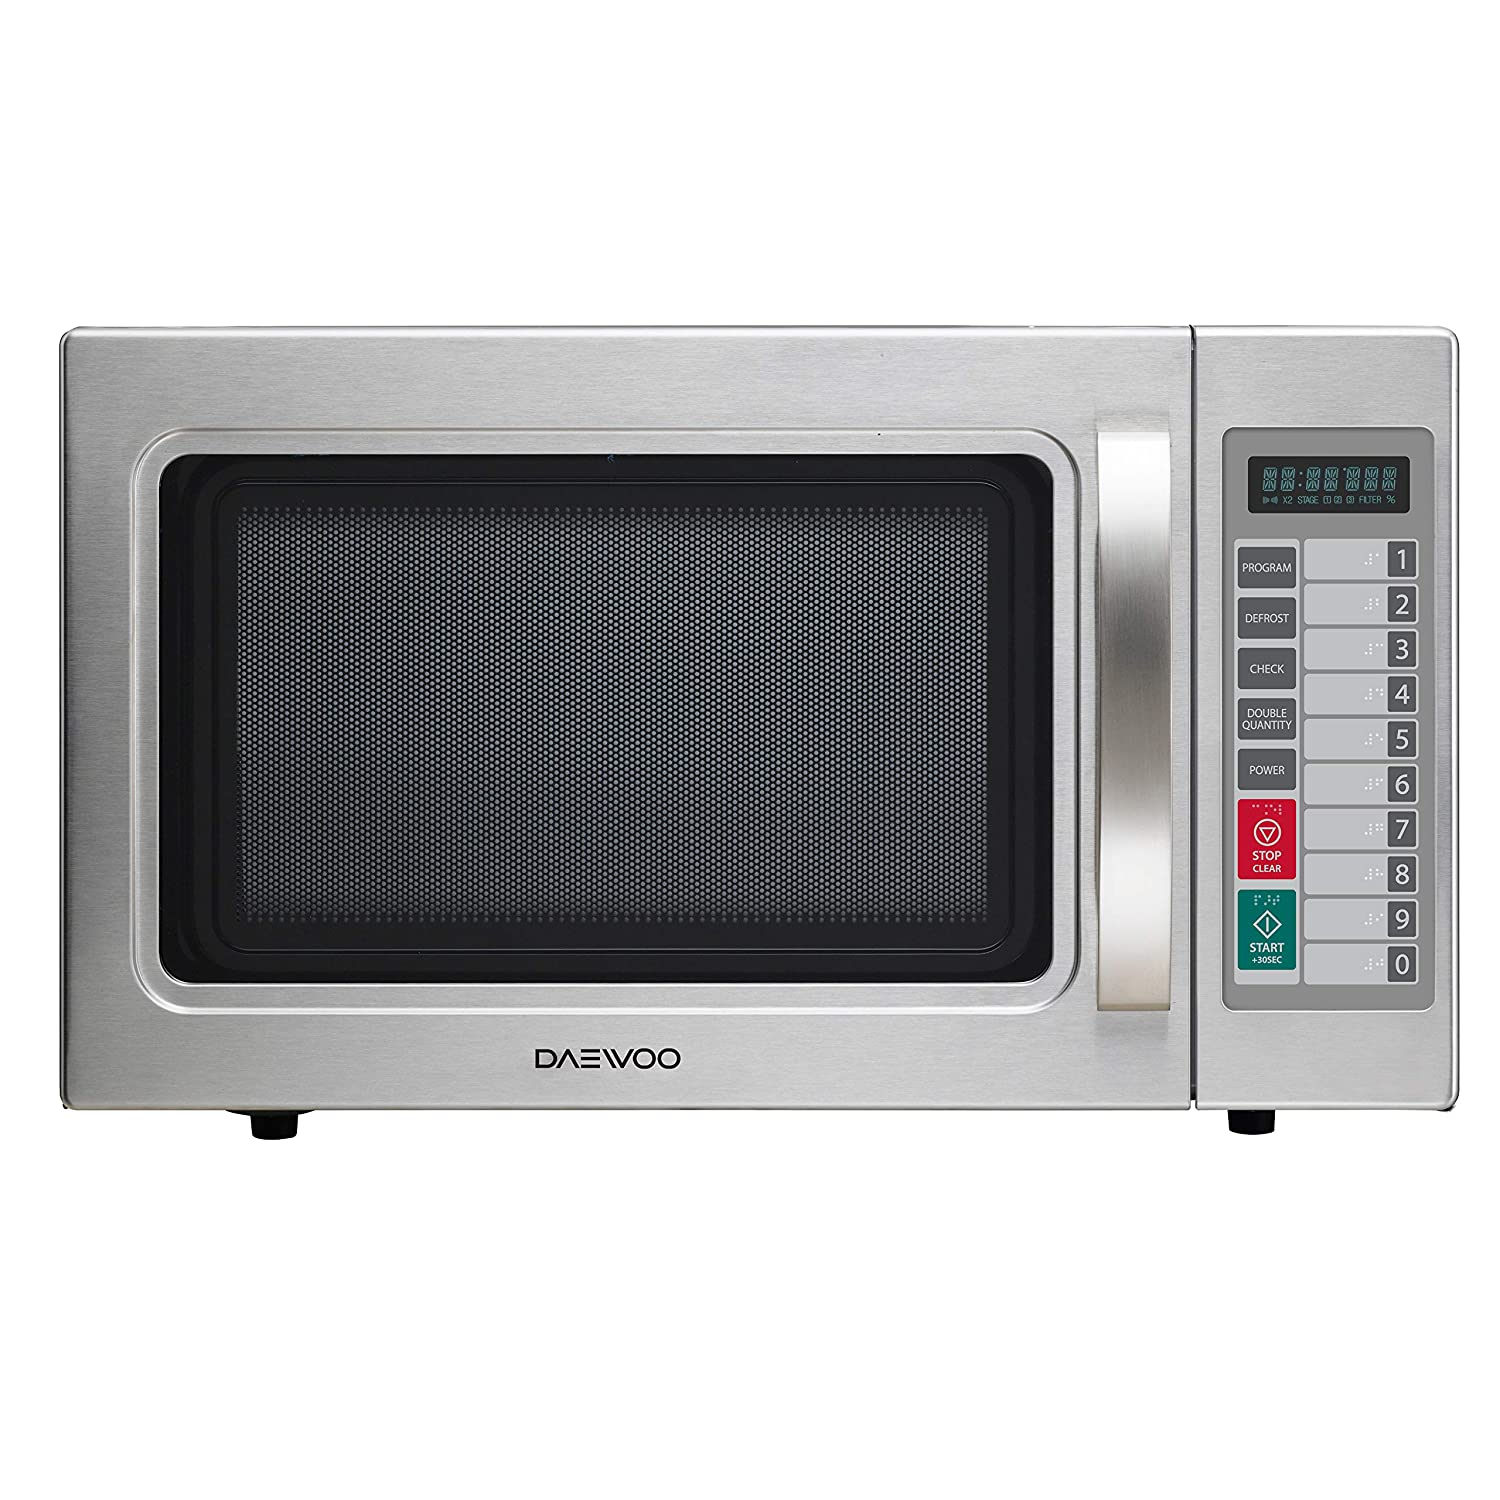 Daewoo KOM-9P5CES Commercial Microwave Oven 1.0 Cu. Ft., 1000W | Stainless Steel